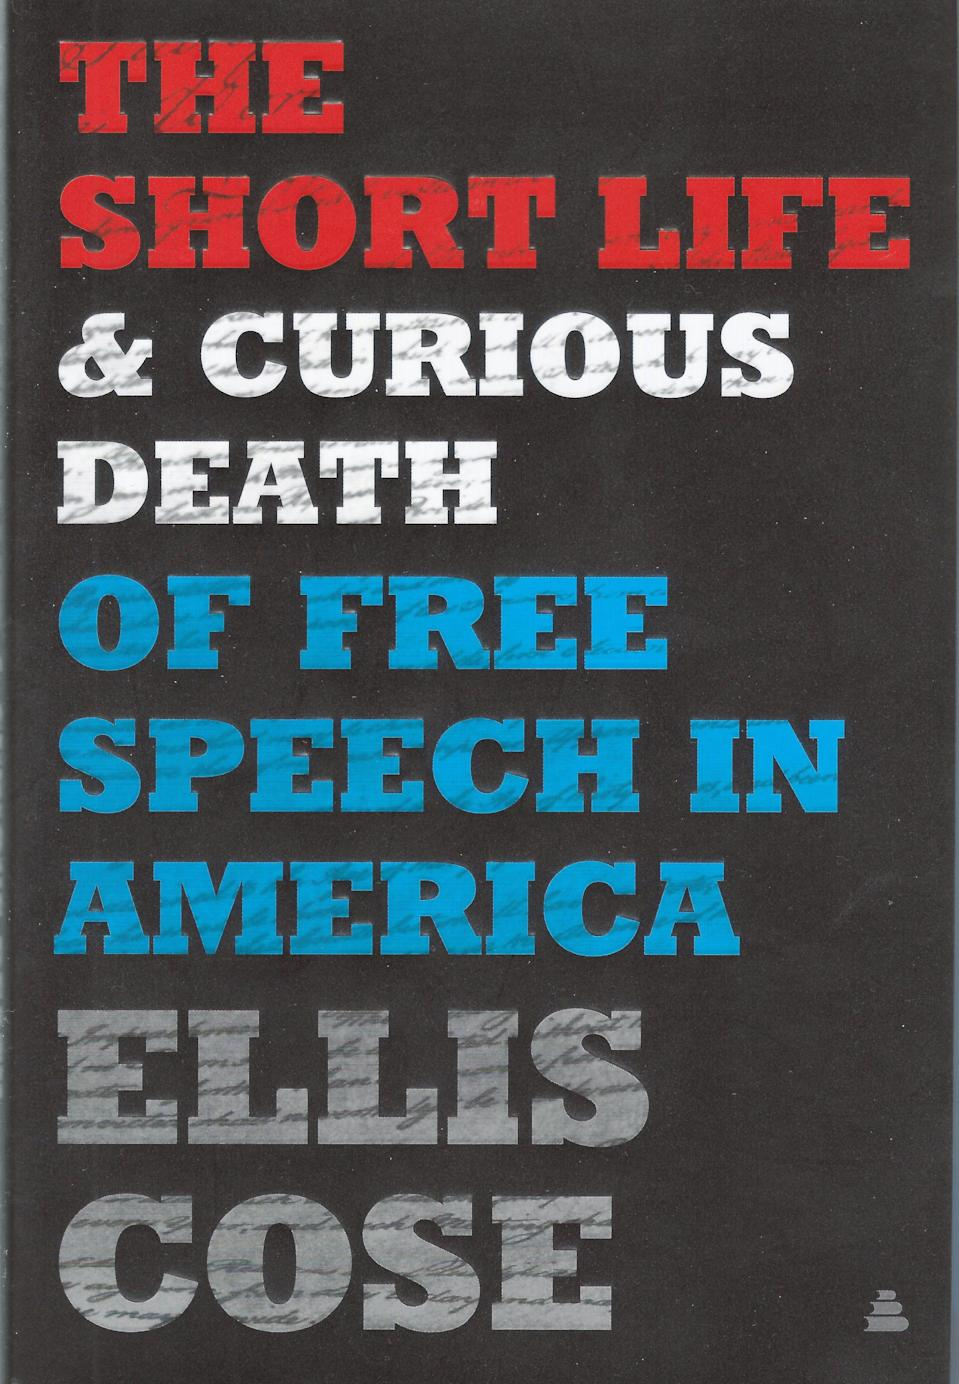 The Short Life & Curious Death of Free Speech in America, by Ellis Cose, published Sept. 15, 2020, by Amistad.